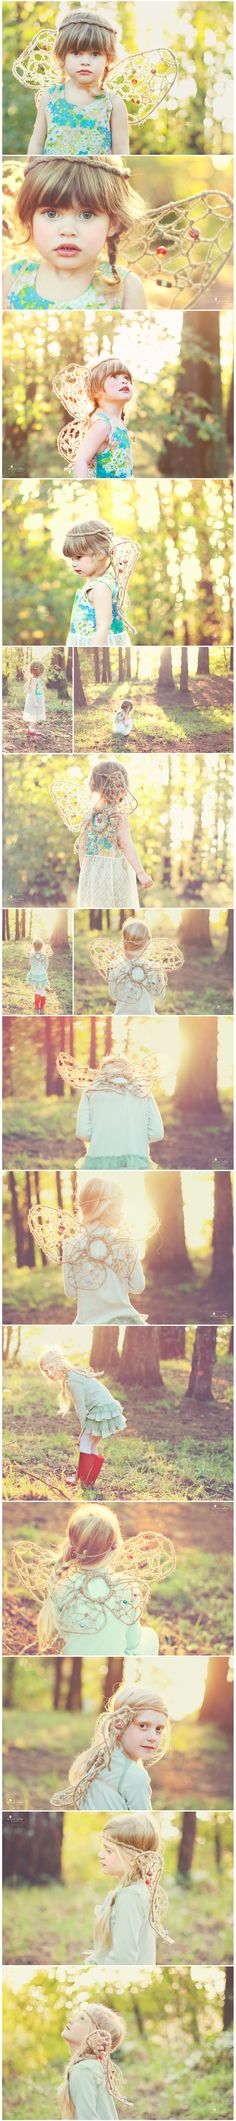 @Melisha Blair LOVE THIS! One day, I will dress my daughter up as a fairy and make her do things like this. :)